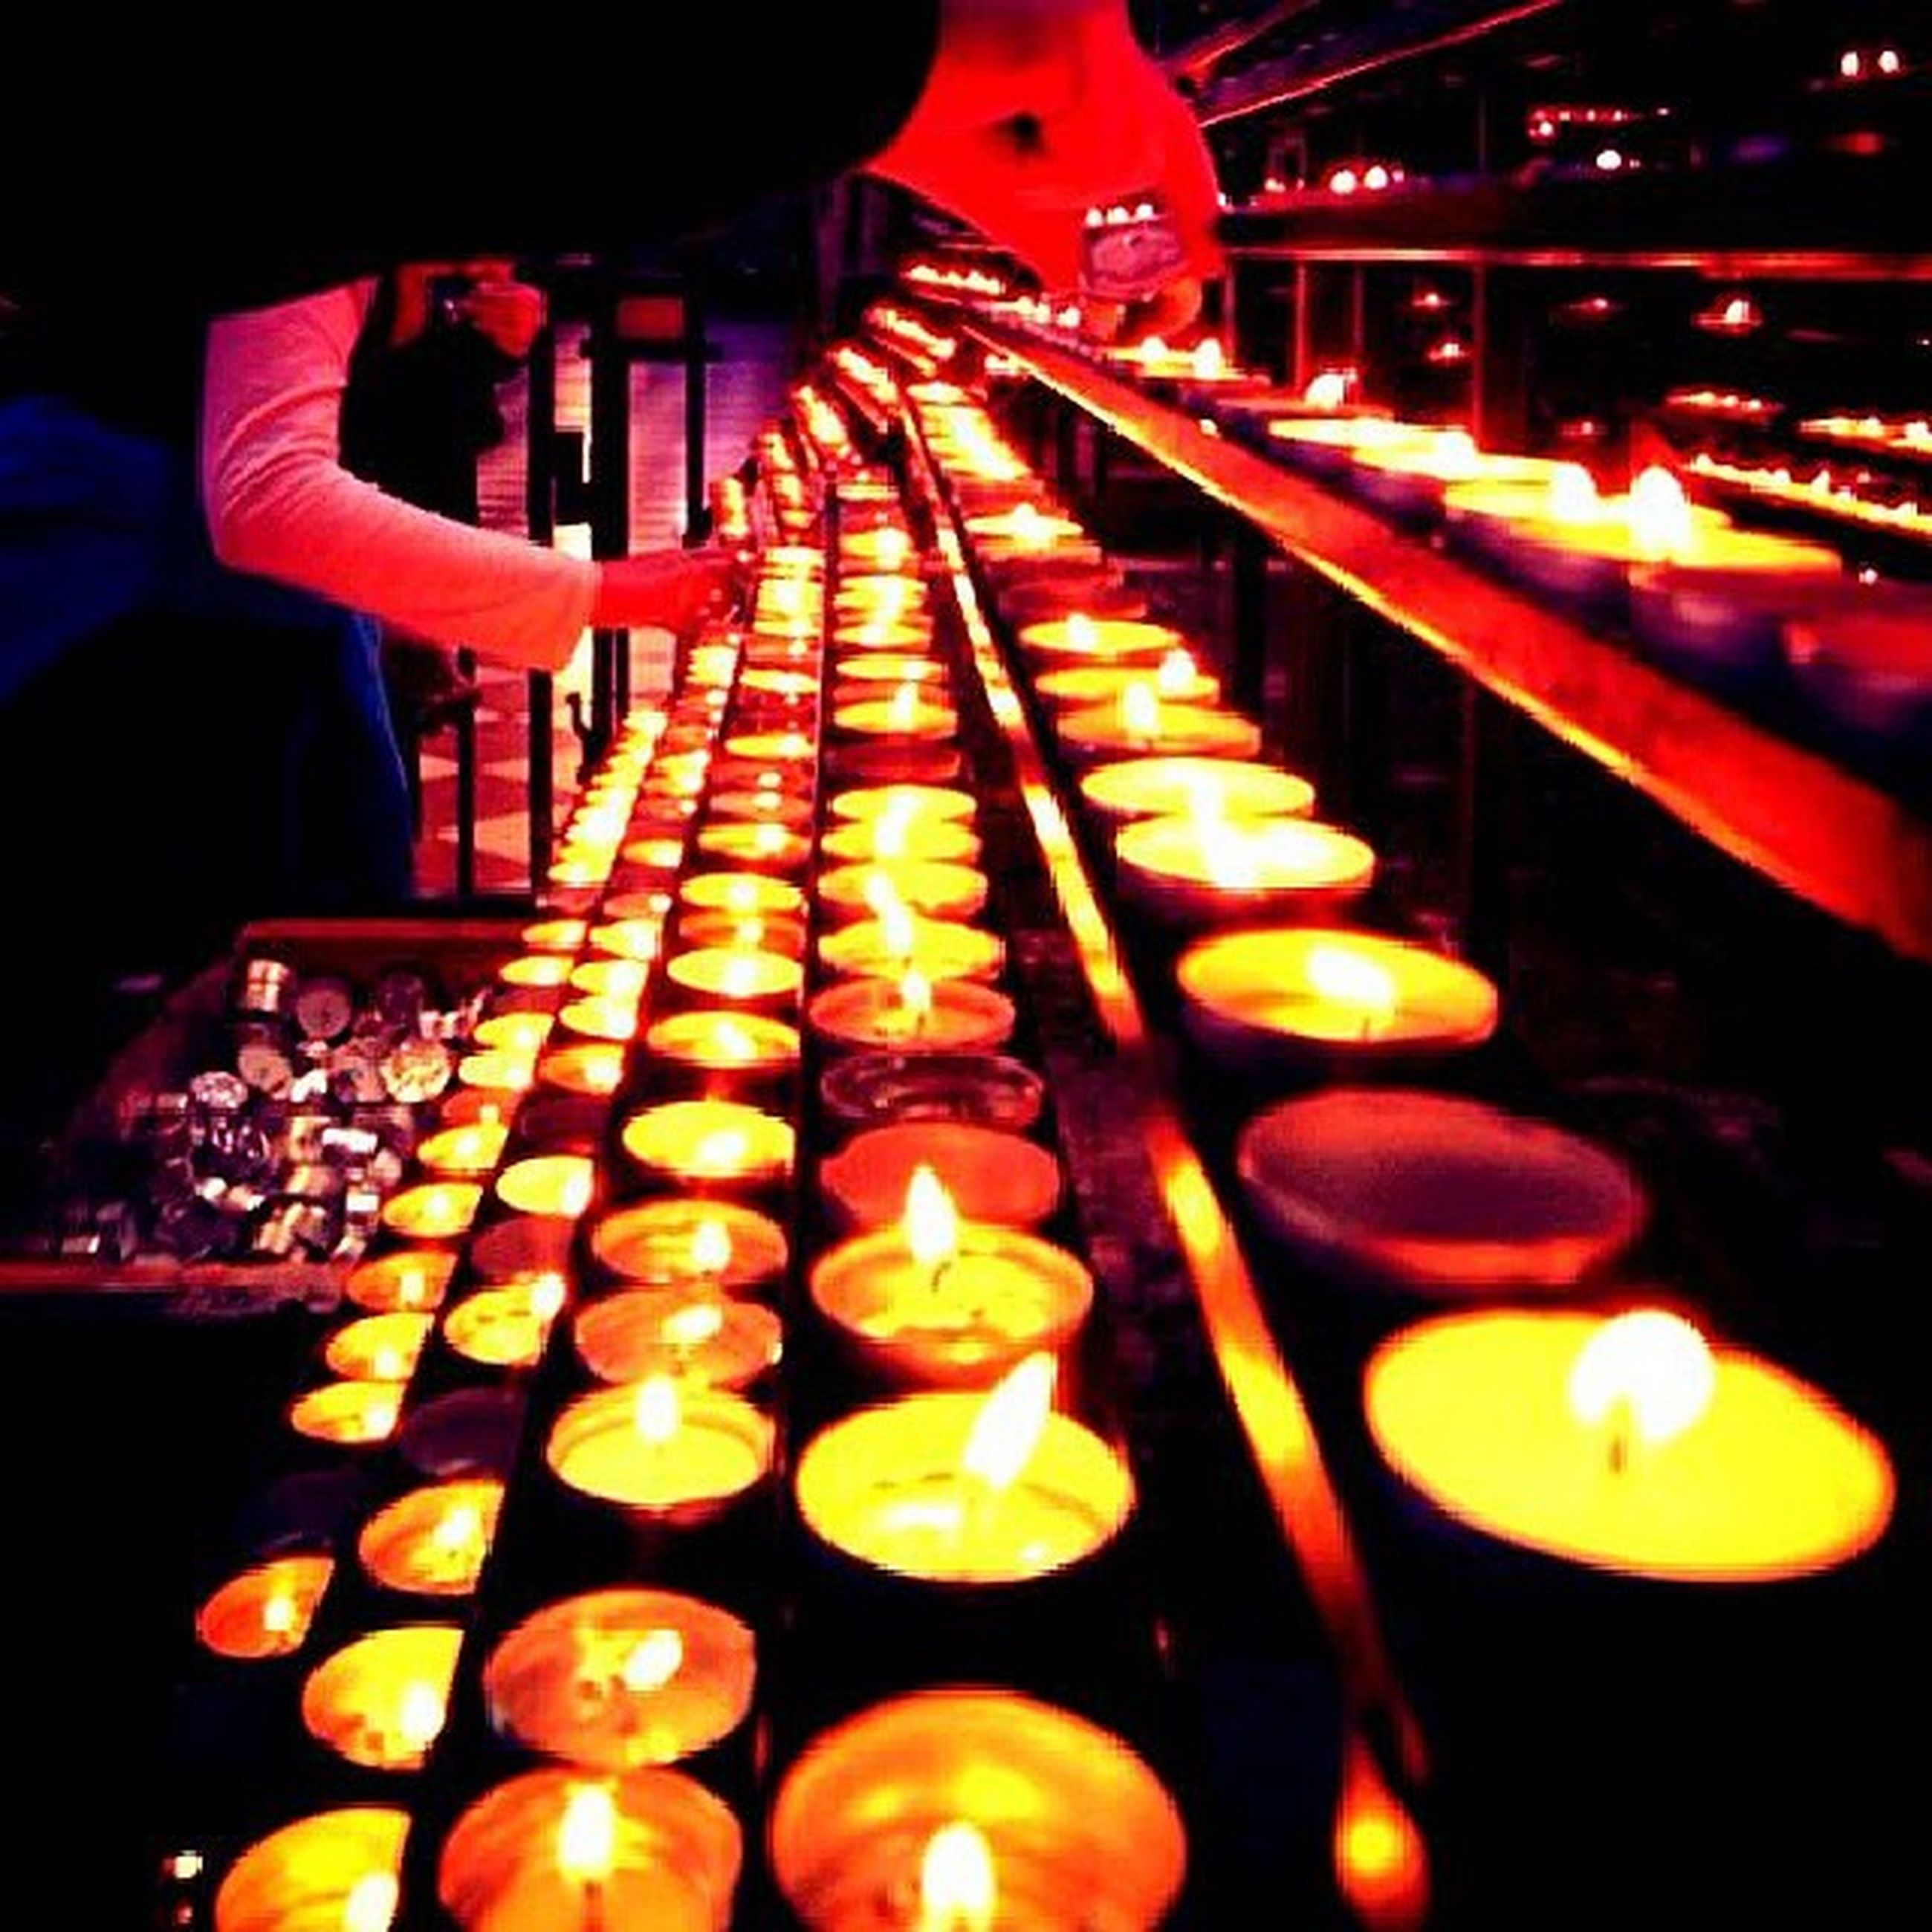 illuminated, night, indoors, burning, flame, fire - natural phenomenon, heat - temperature, glowing, candle, lit, lighting equipment, light - natural phenomenon, in a row, fire, large group of objects, religion, wood - material, tradition, close-up, hanging